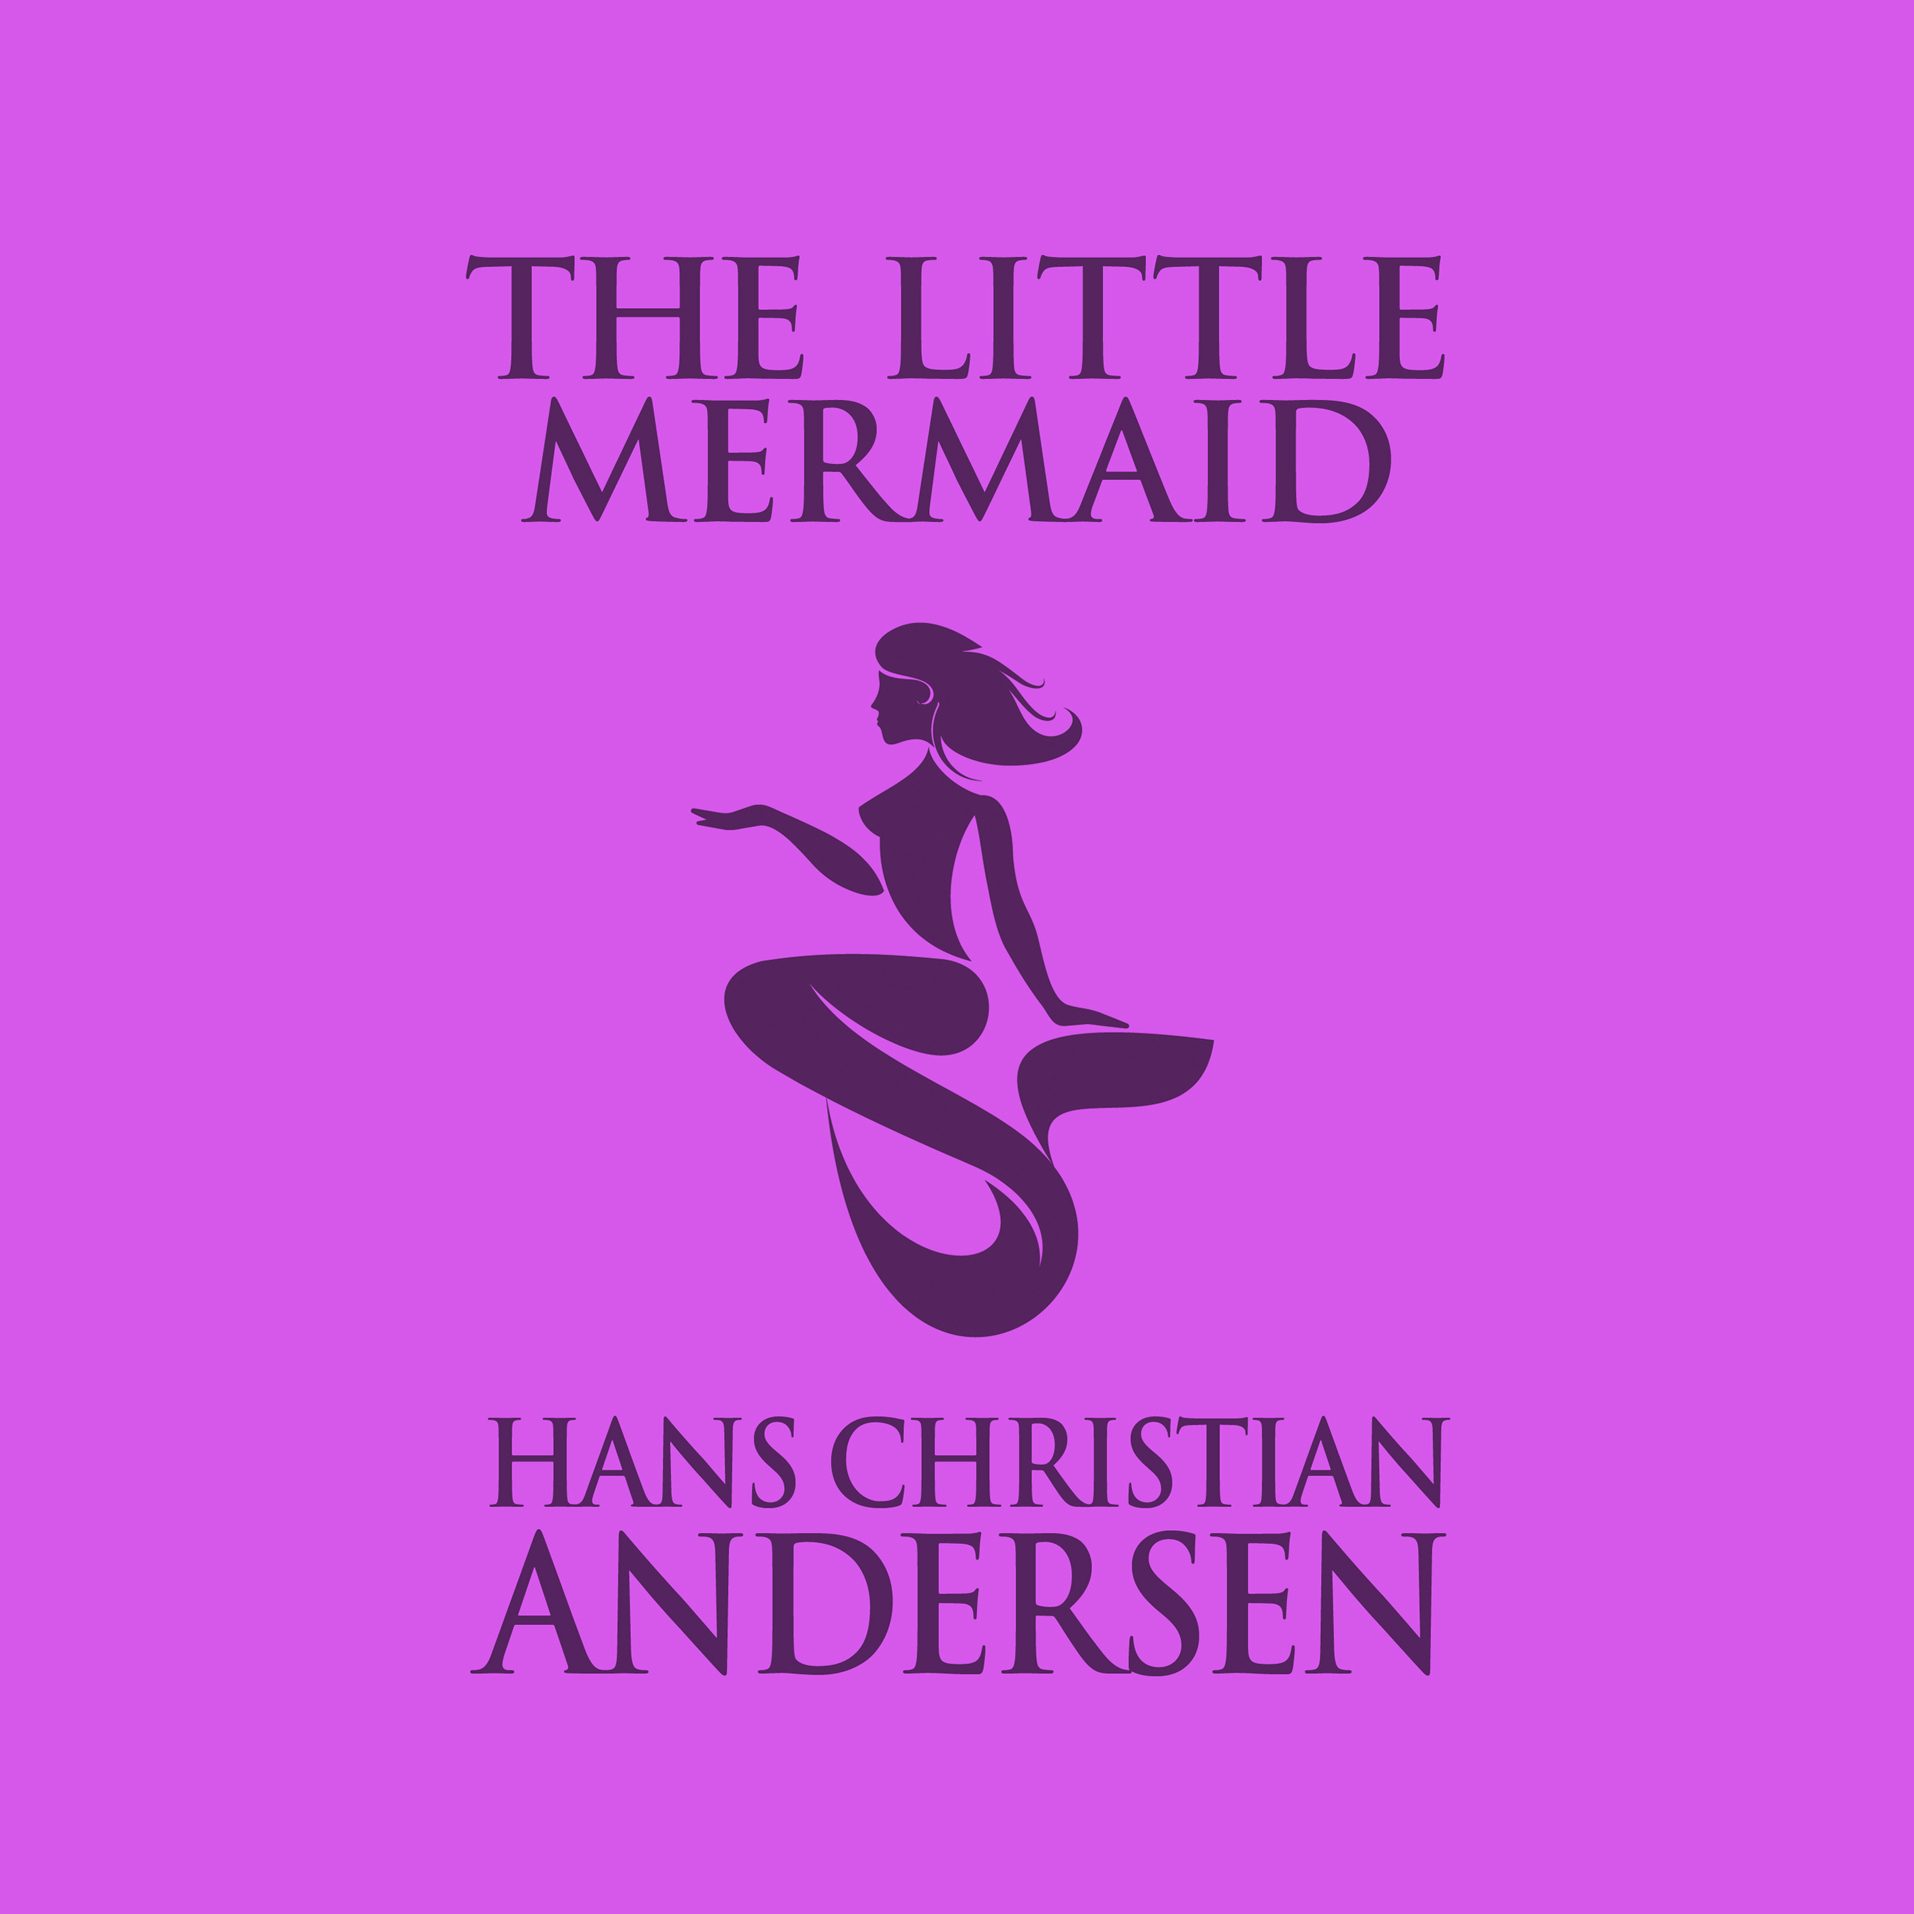 christians against the little mermaid